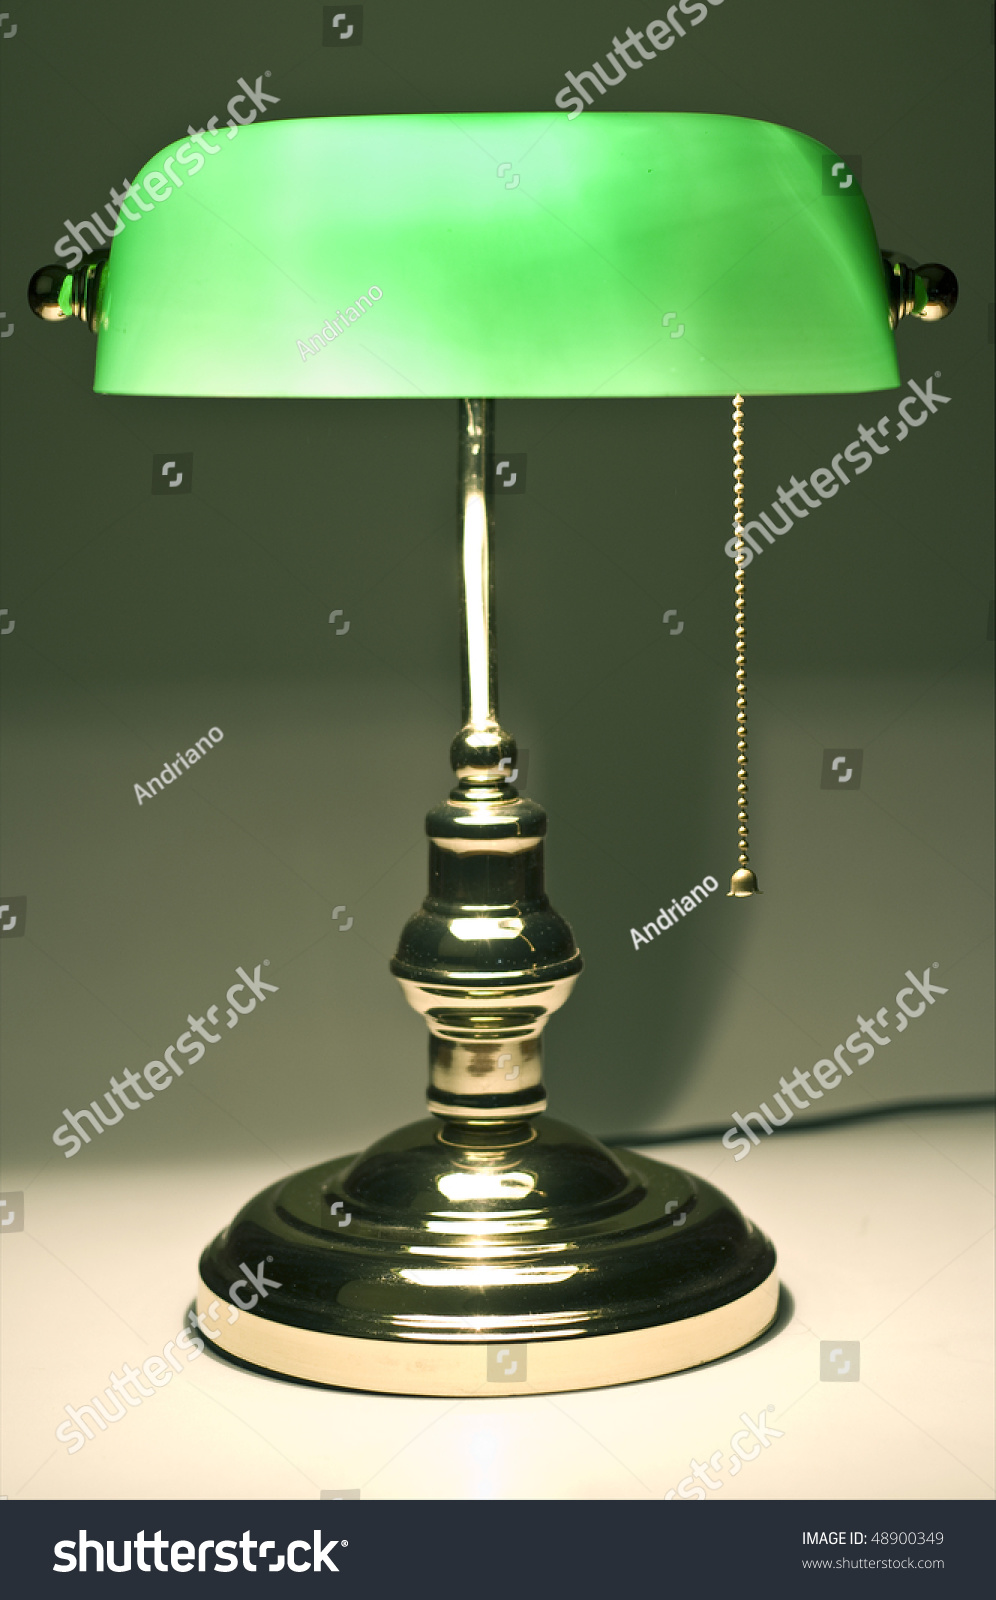 Banker table lamp choice image coffee table design ideas classic banker desk lamp on table stock photo 48900349 shutterstock classic banker desk lamp on table geotapseo Image collections